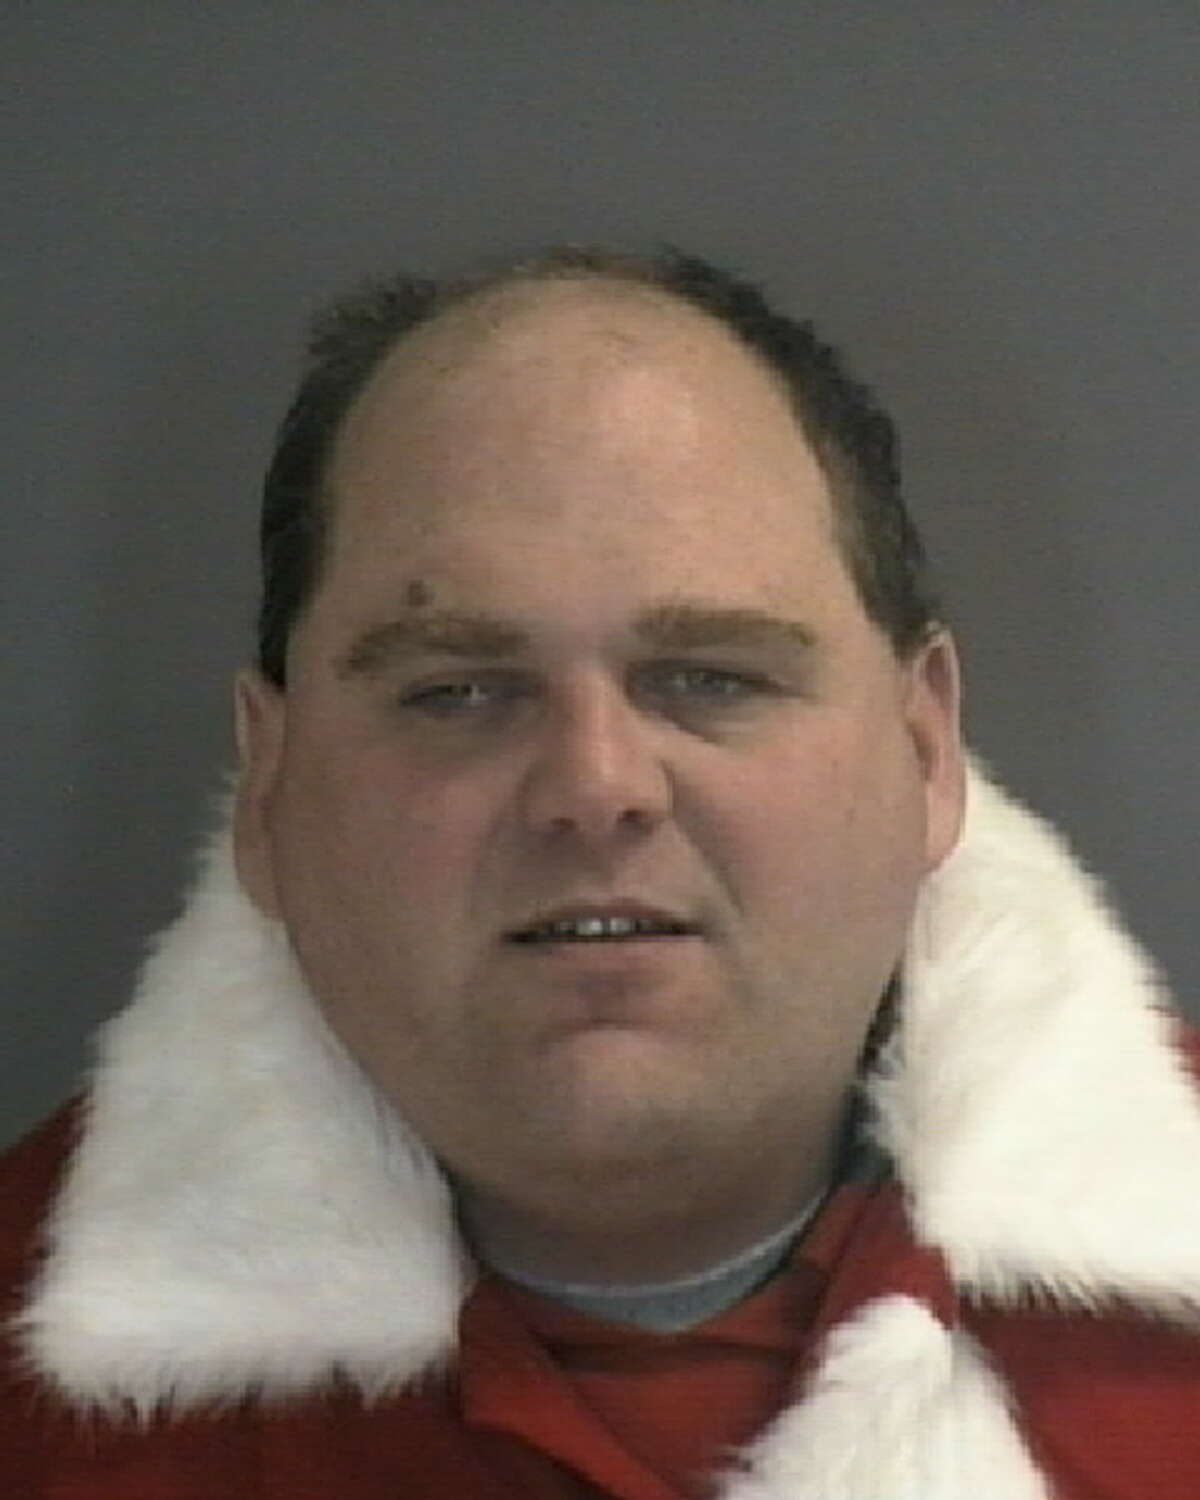 Edward Agrusti was taken into police custody in the parking lot of the Latham Price Chopper location while dressed as Santa Claus on Dec. 24, 2019. Colonie police say there was a warrant out for his arrest for soliciting a prostitute.